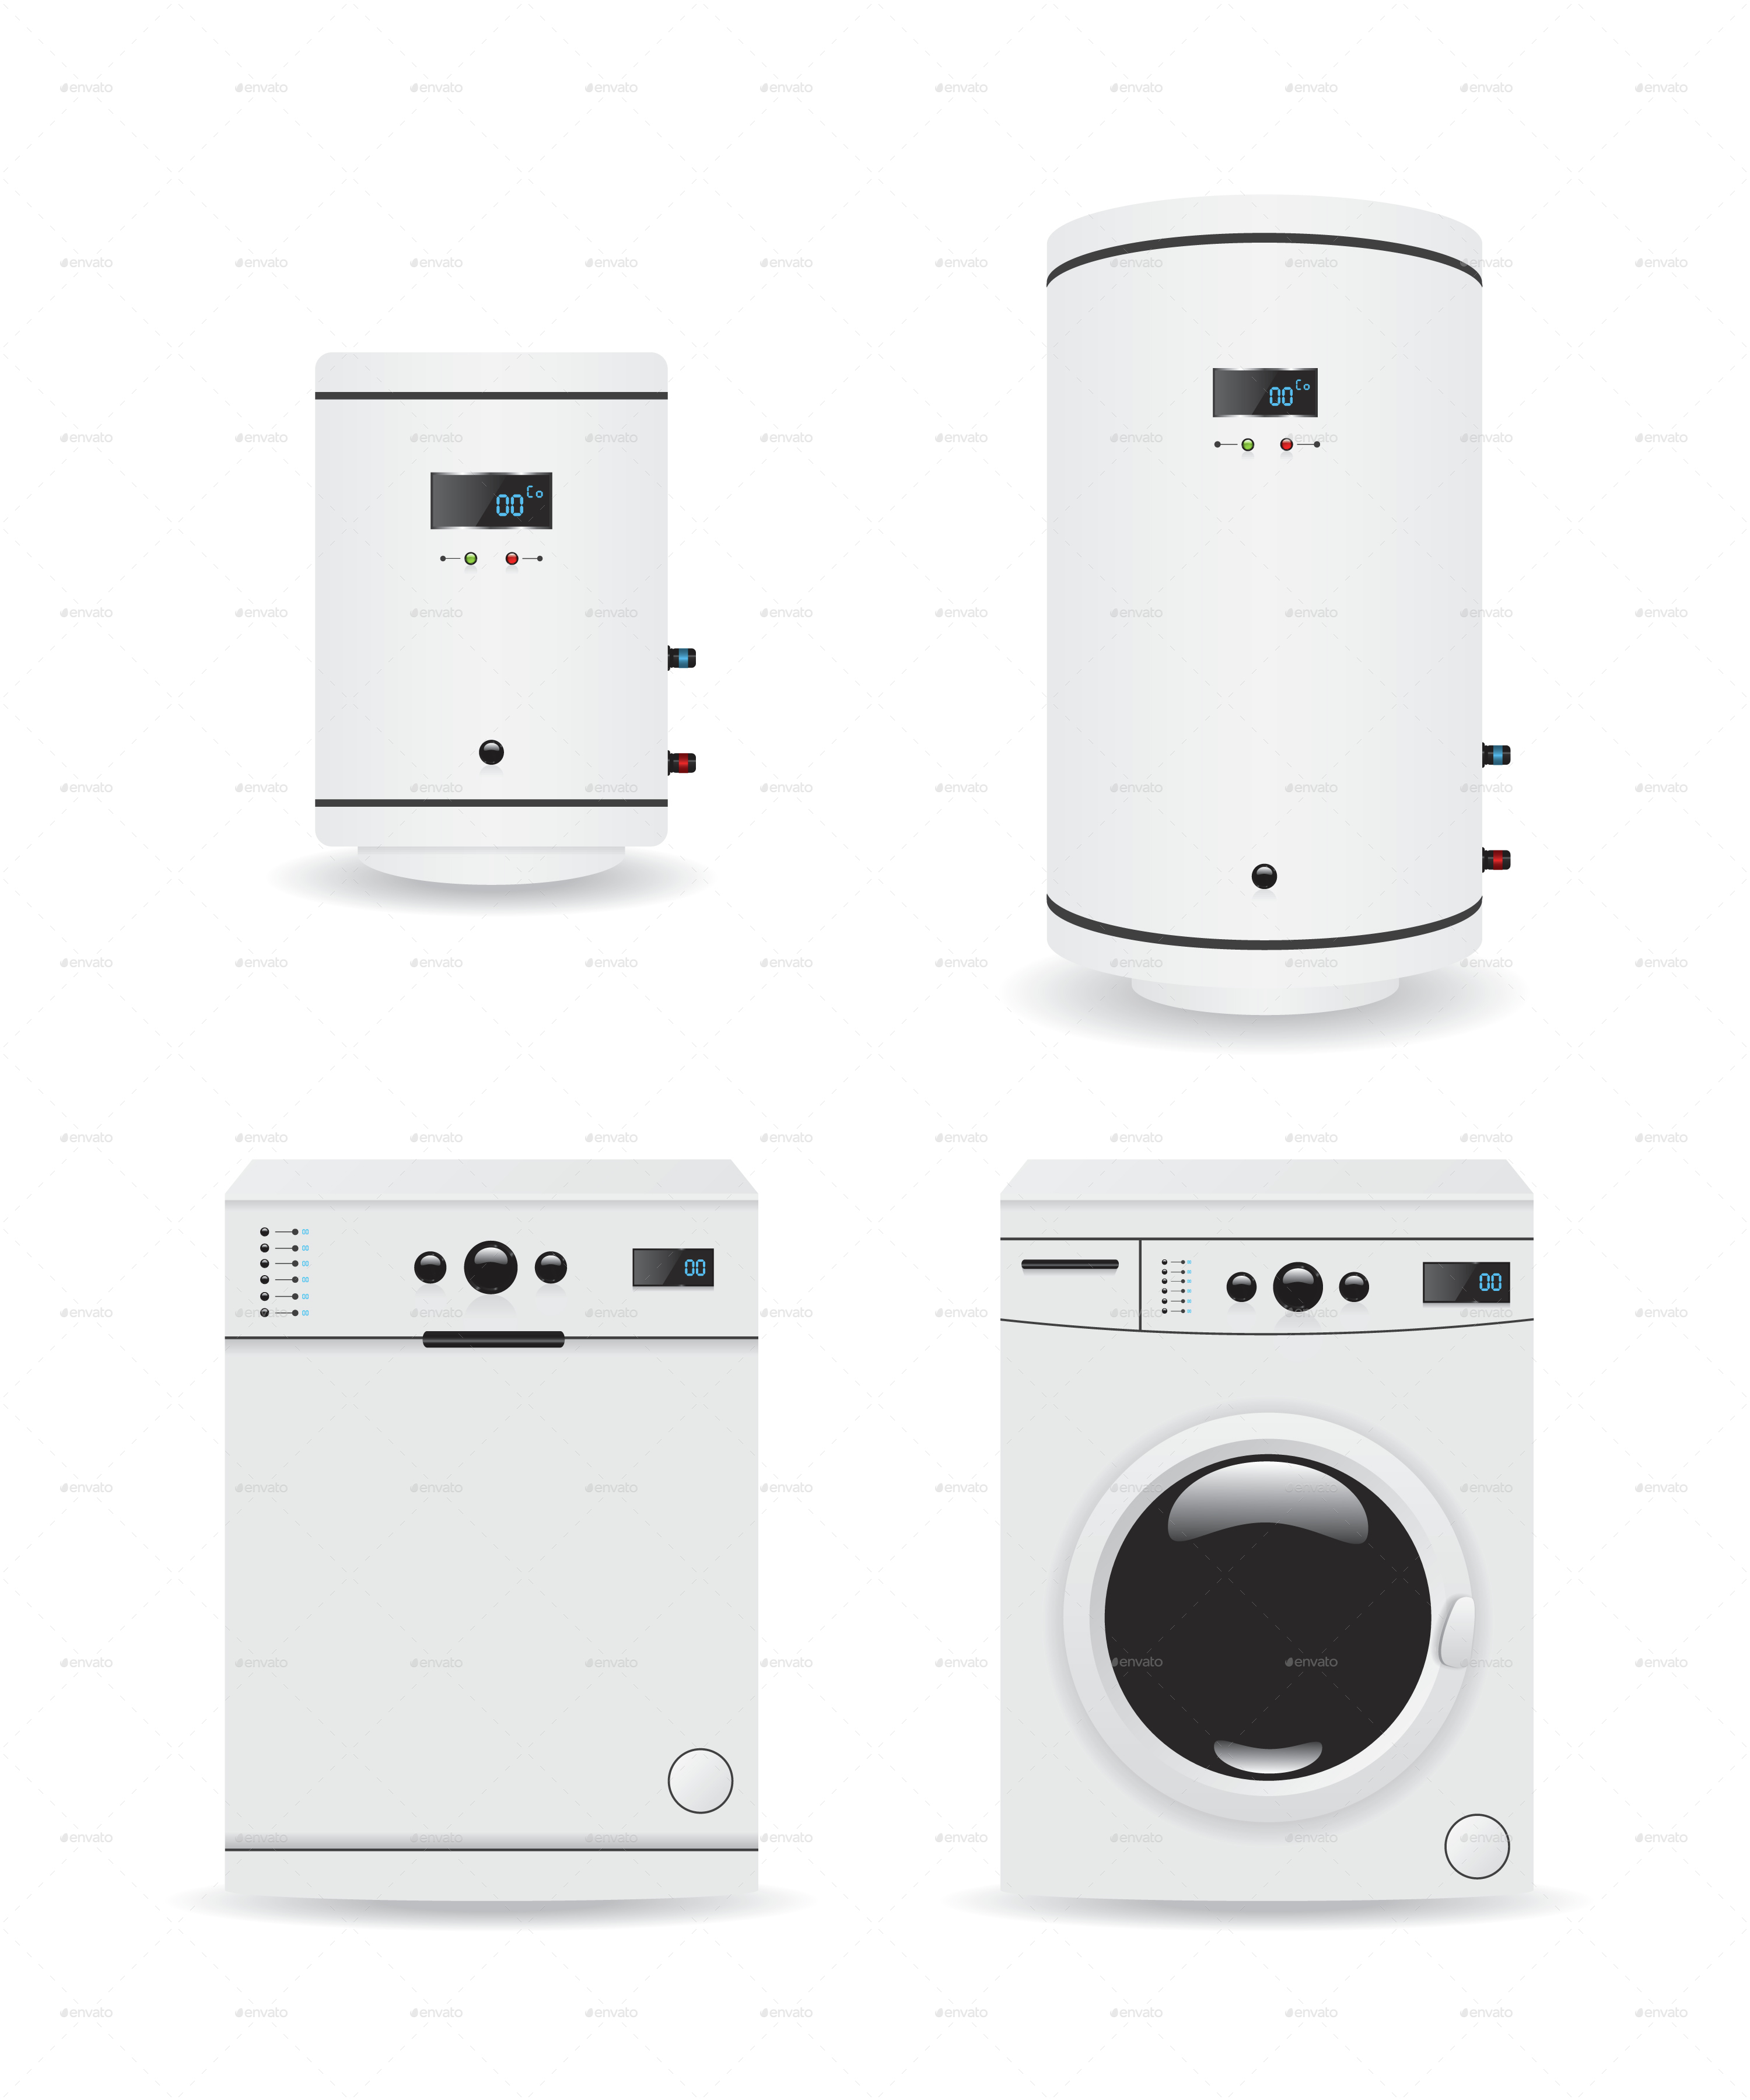 Set of Household Appliances Boiler and Washing Machine by filip323